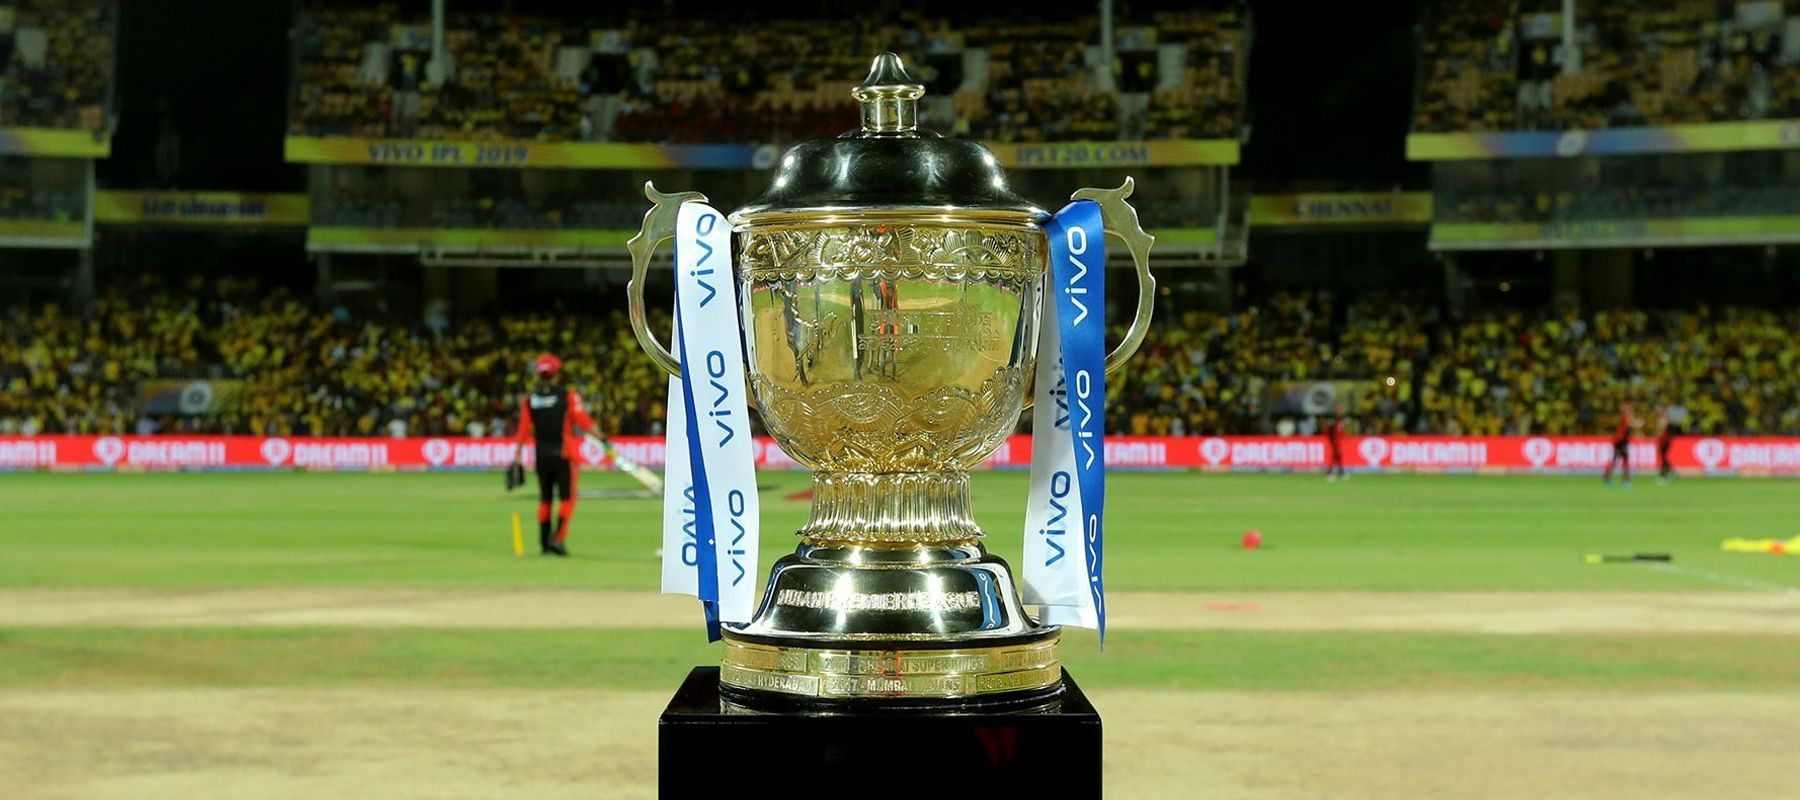 Indian Premier League will begin from Sep 19 in UAE